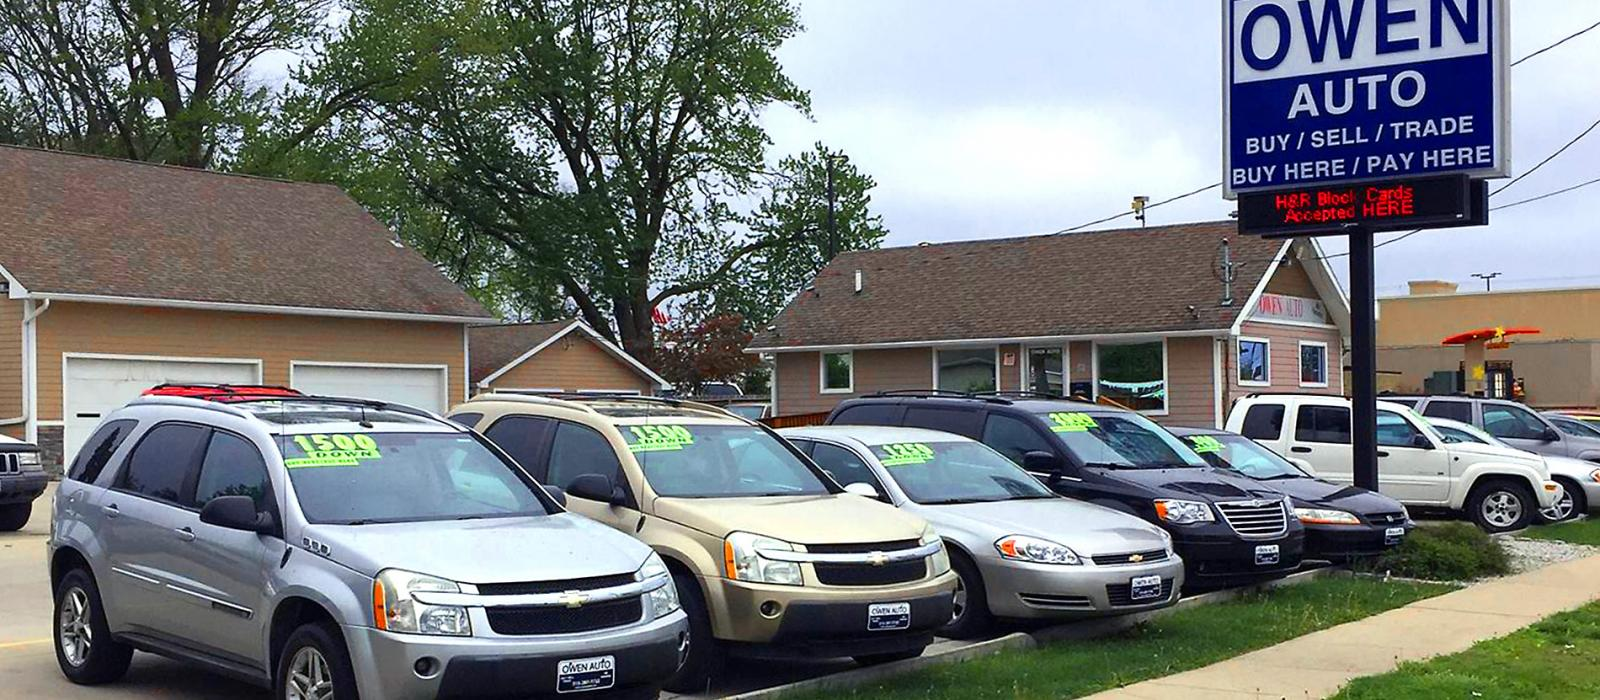 By Here Pay Here >> Owen Auto Buy Here Pay Here Dealer Des Moines Ia